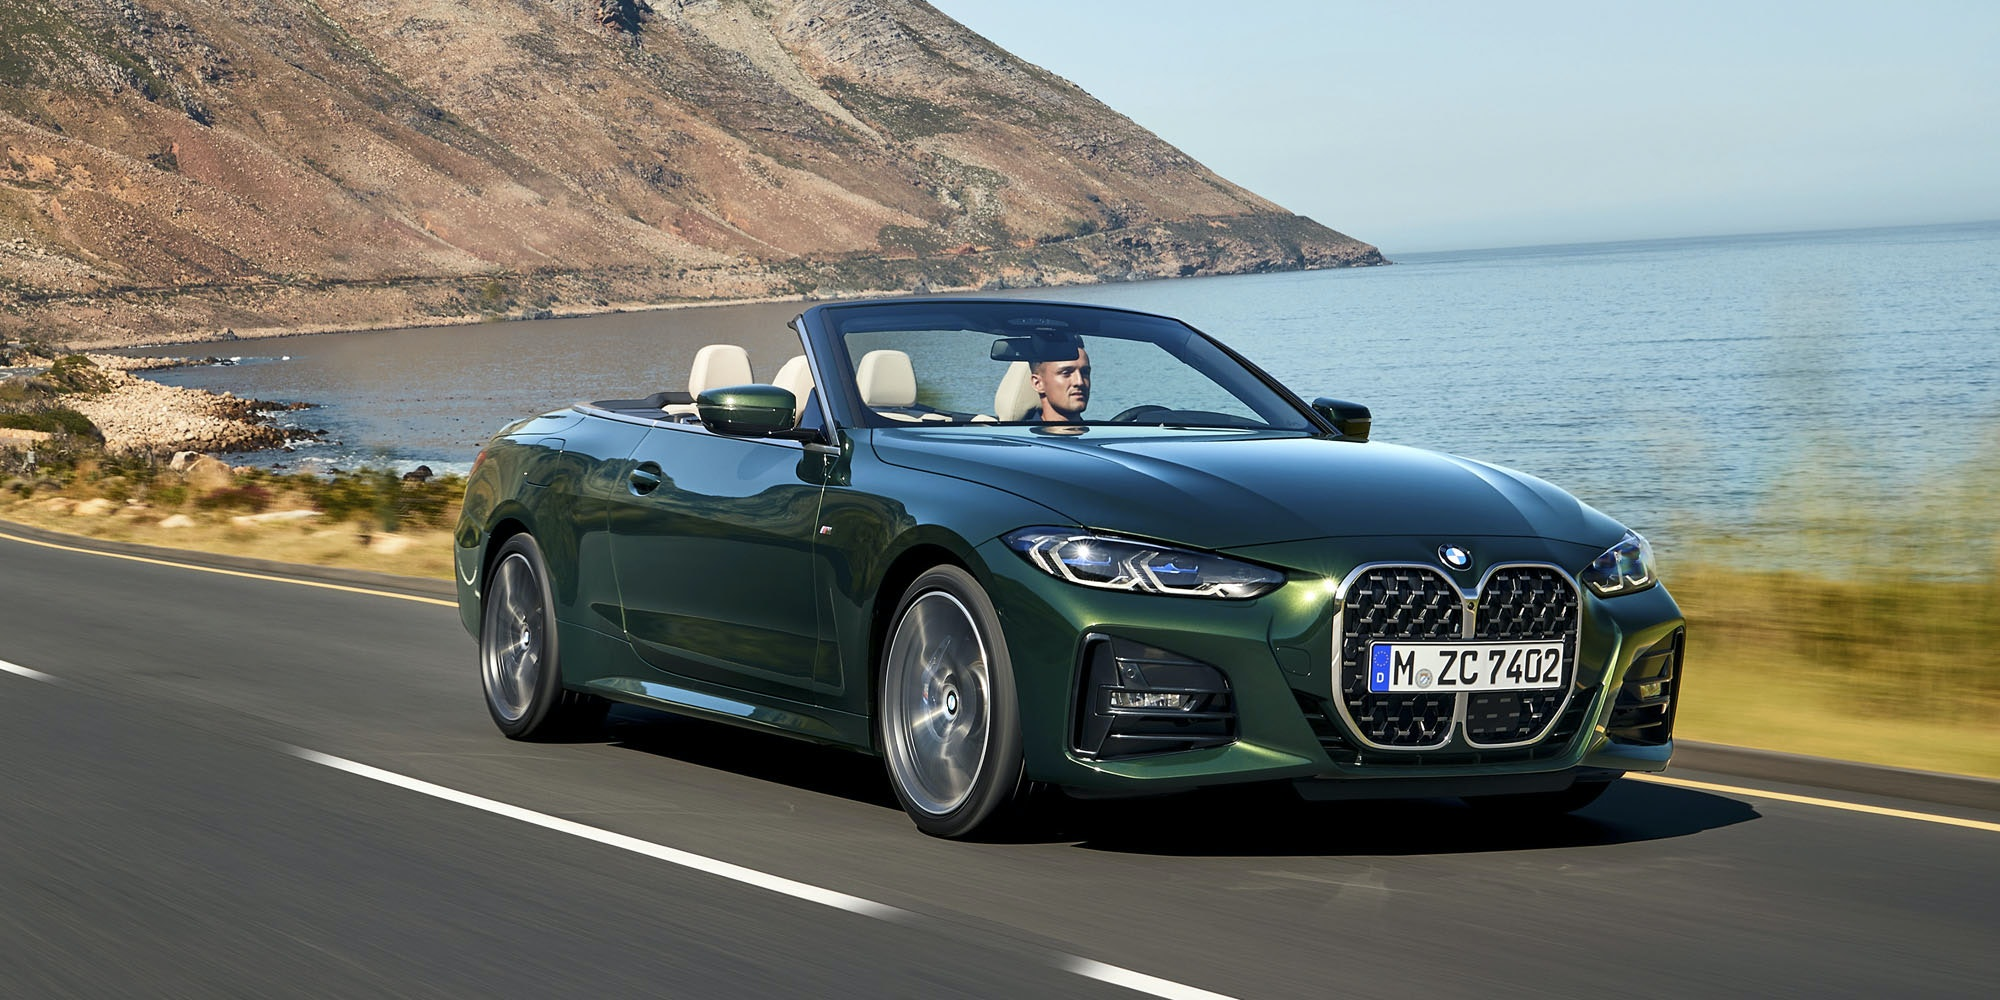 2021 Bmw 4 Series Convertible Revealed Price Specs And Release Date Carwow